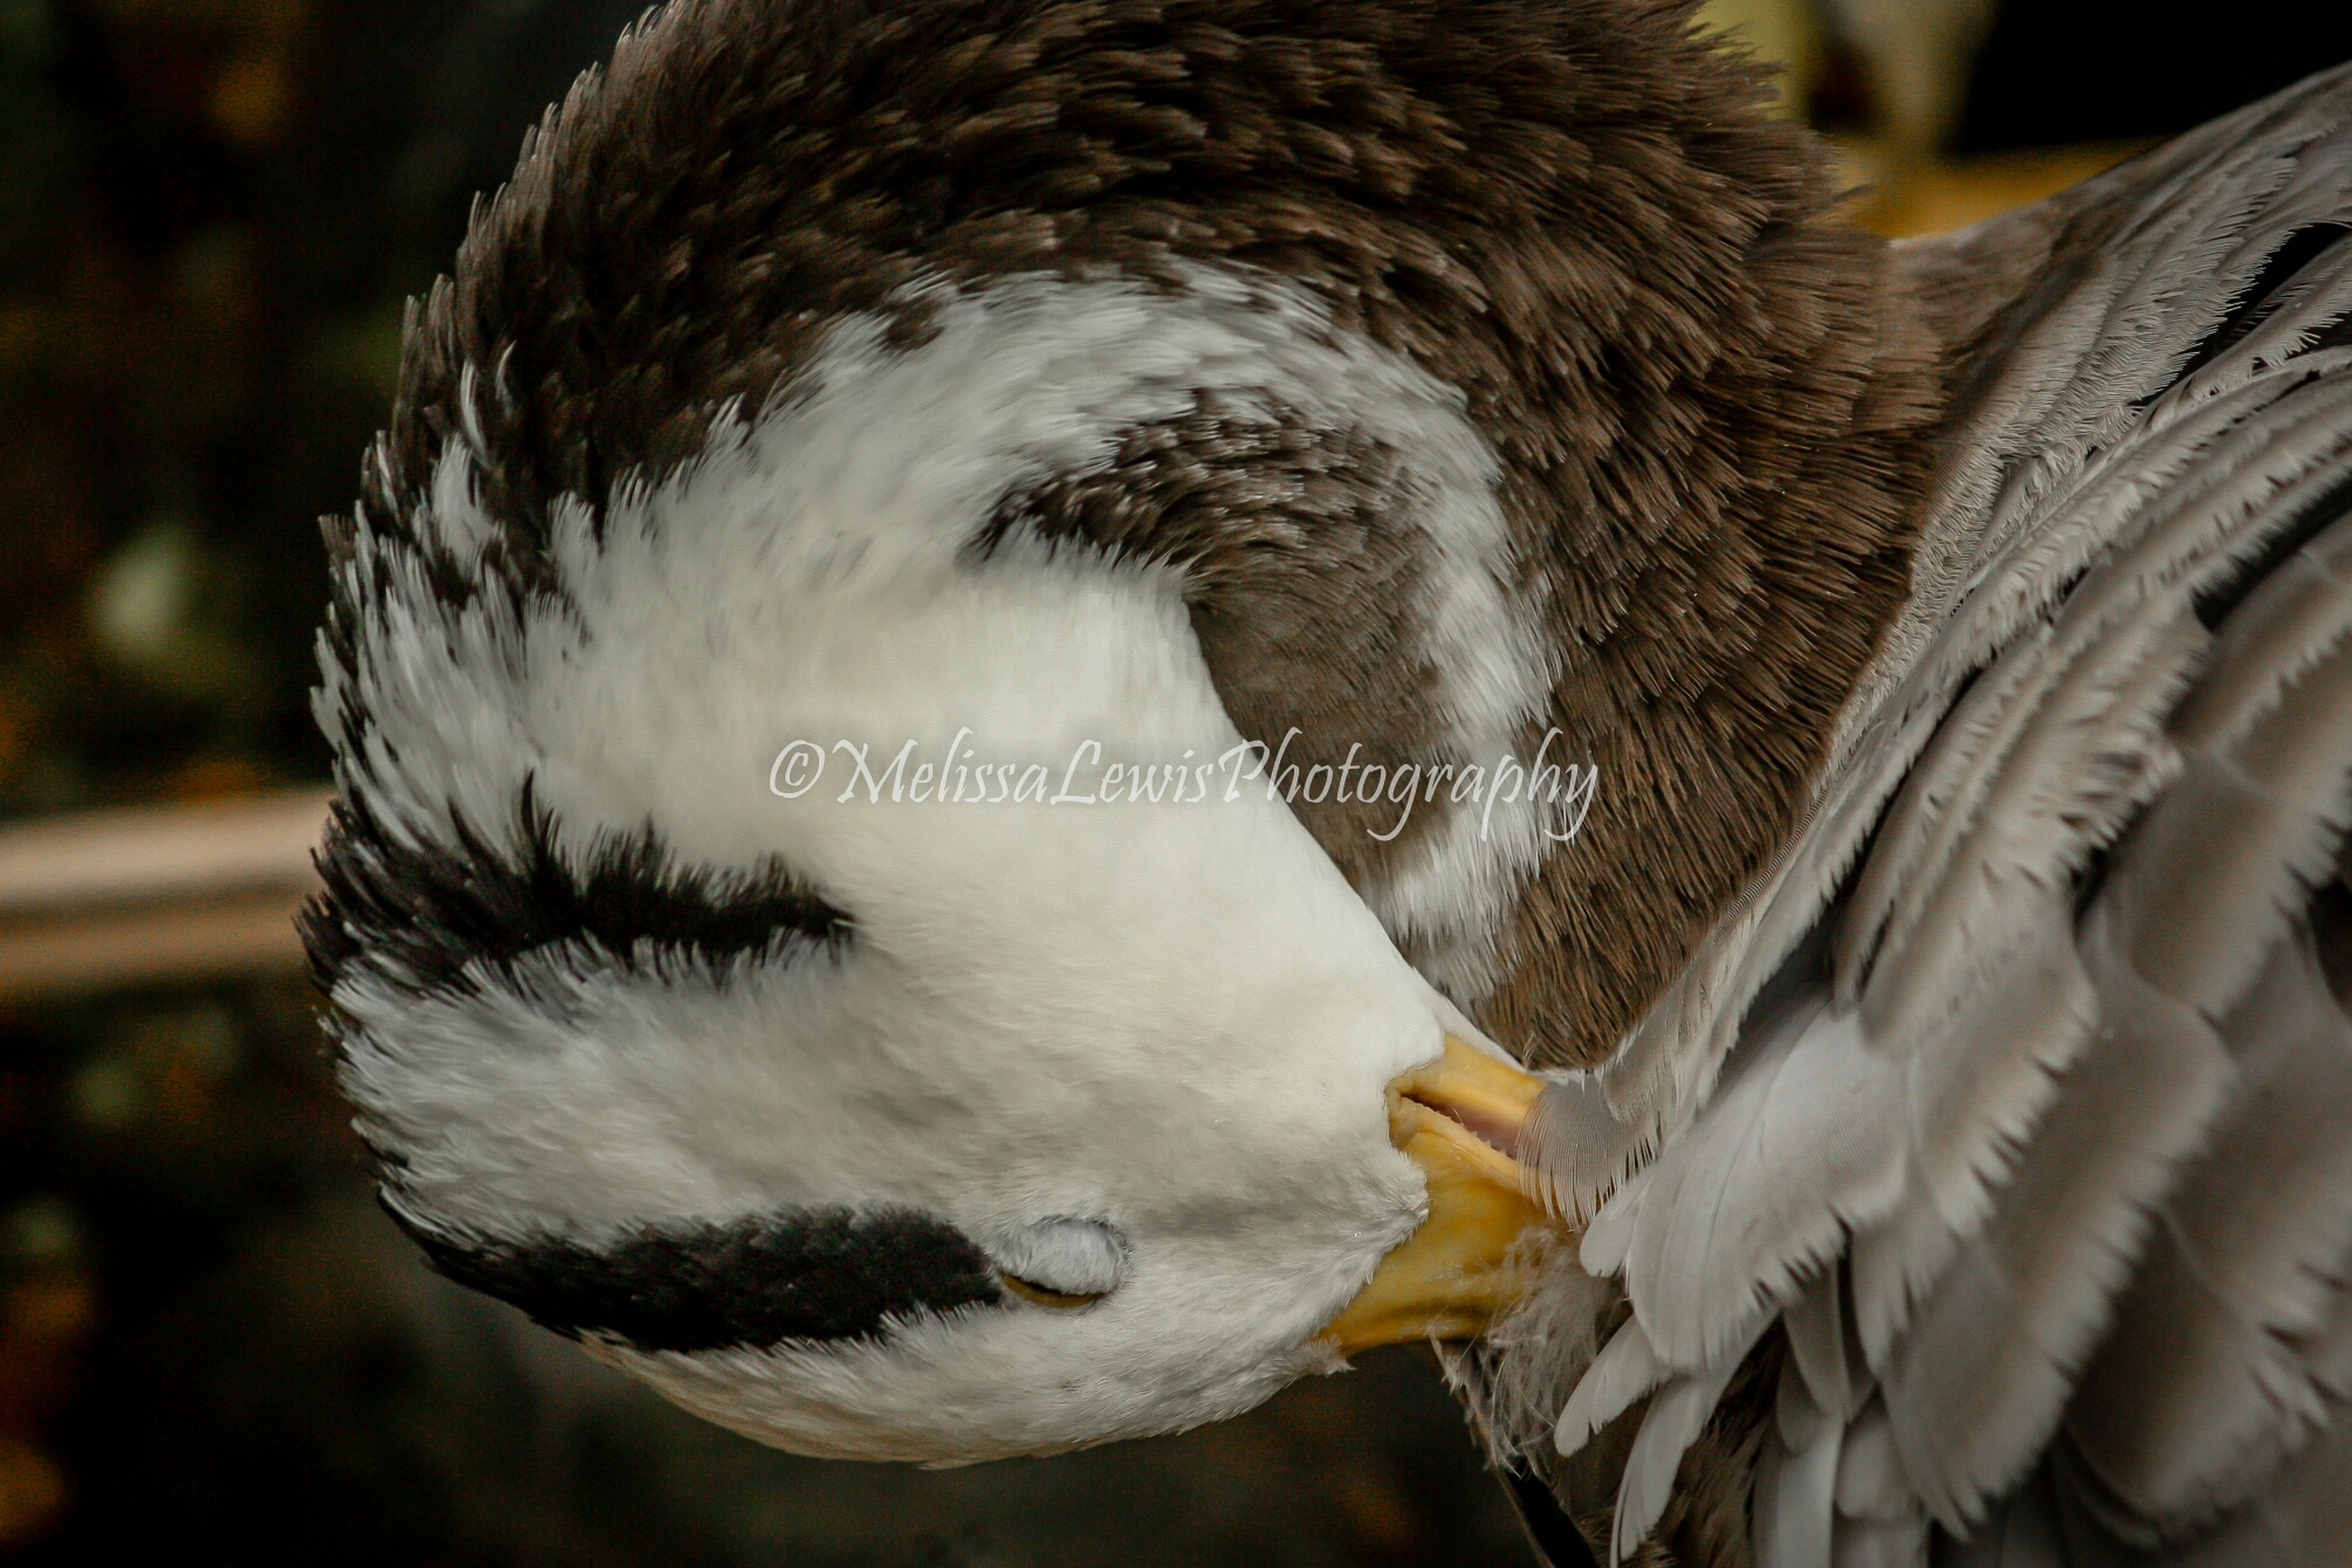 bird, animal themes, animals in the wild, close-up, one animal, focus on foreground, wildlife, feather, beak, nature, outdoors, day, no people, animal head, white color, beauty in nature, swan, water, animal body part